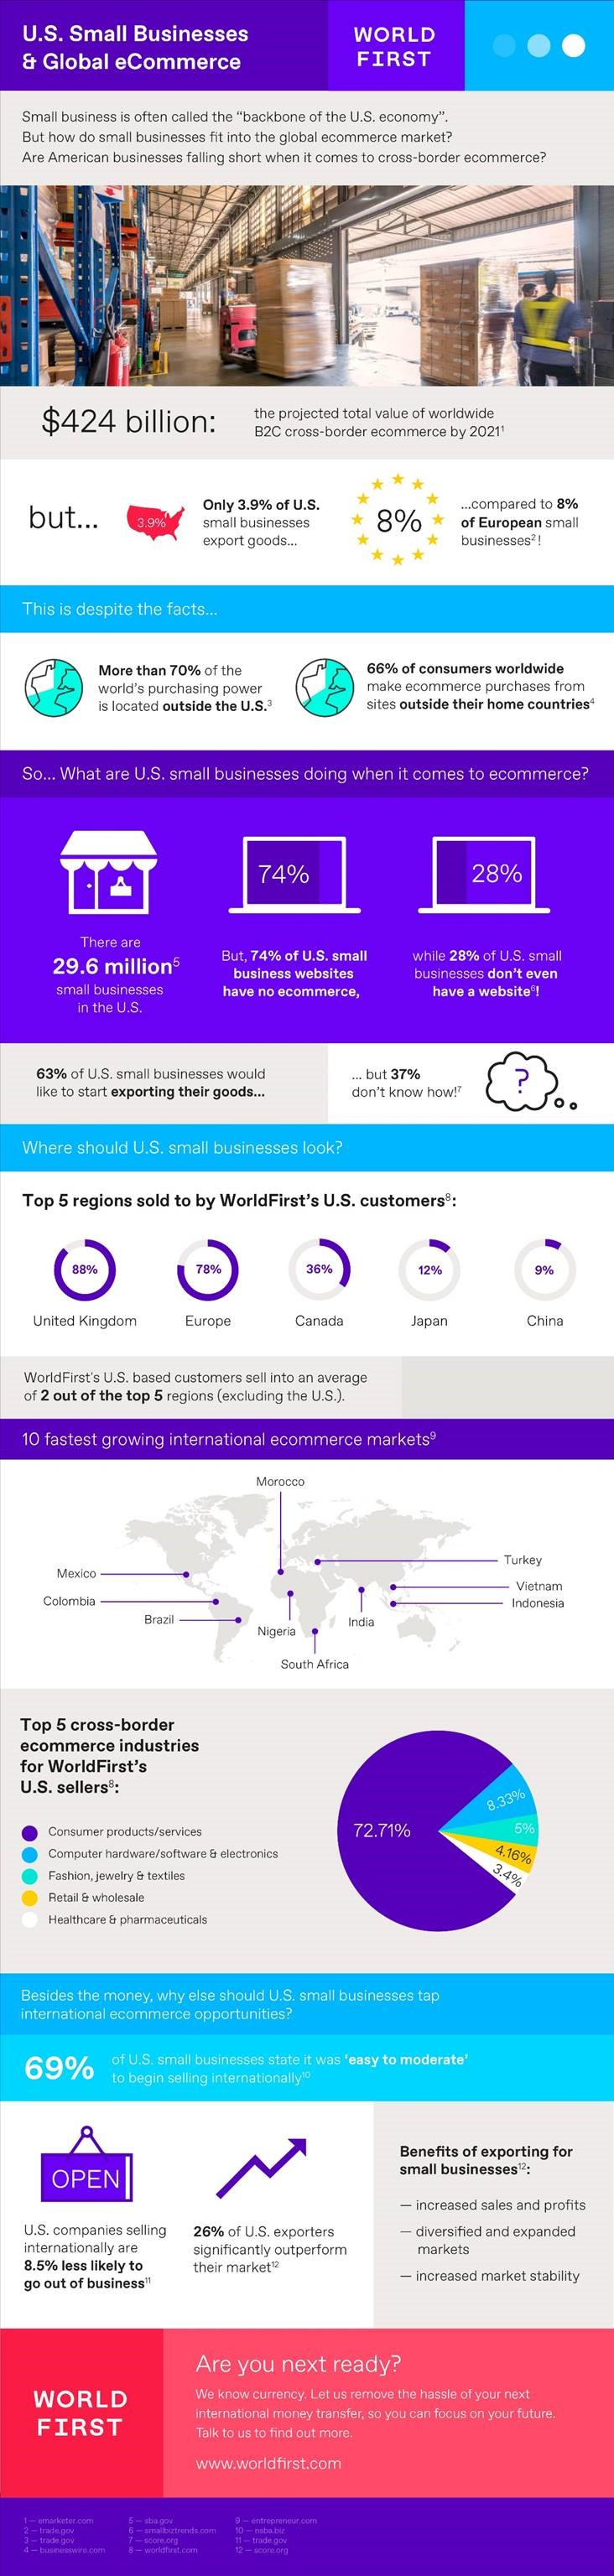 WorldFirst Infographic